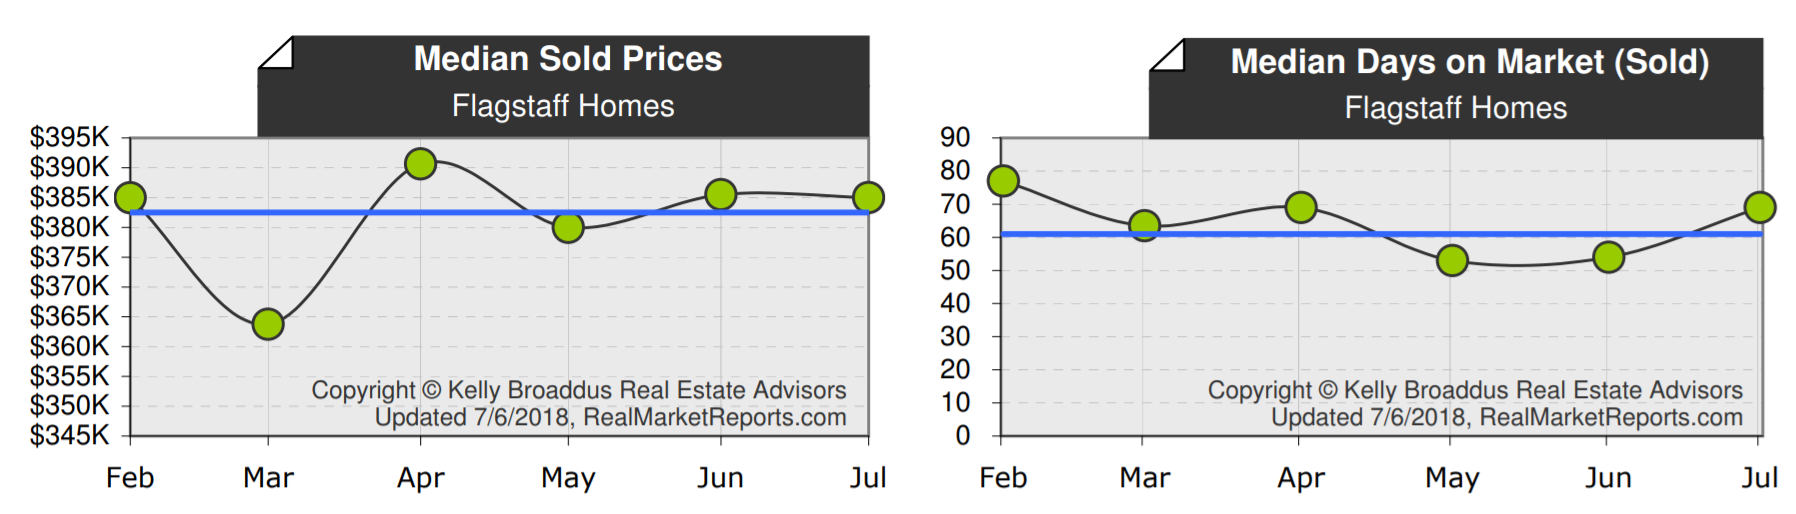 Flagstaff Median Home Price and Days on Market June 2018